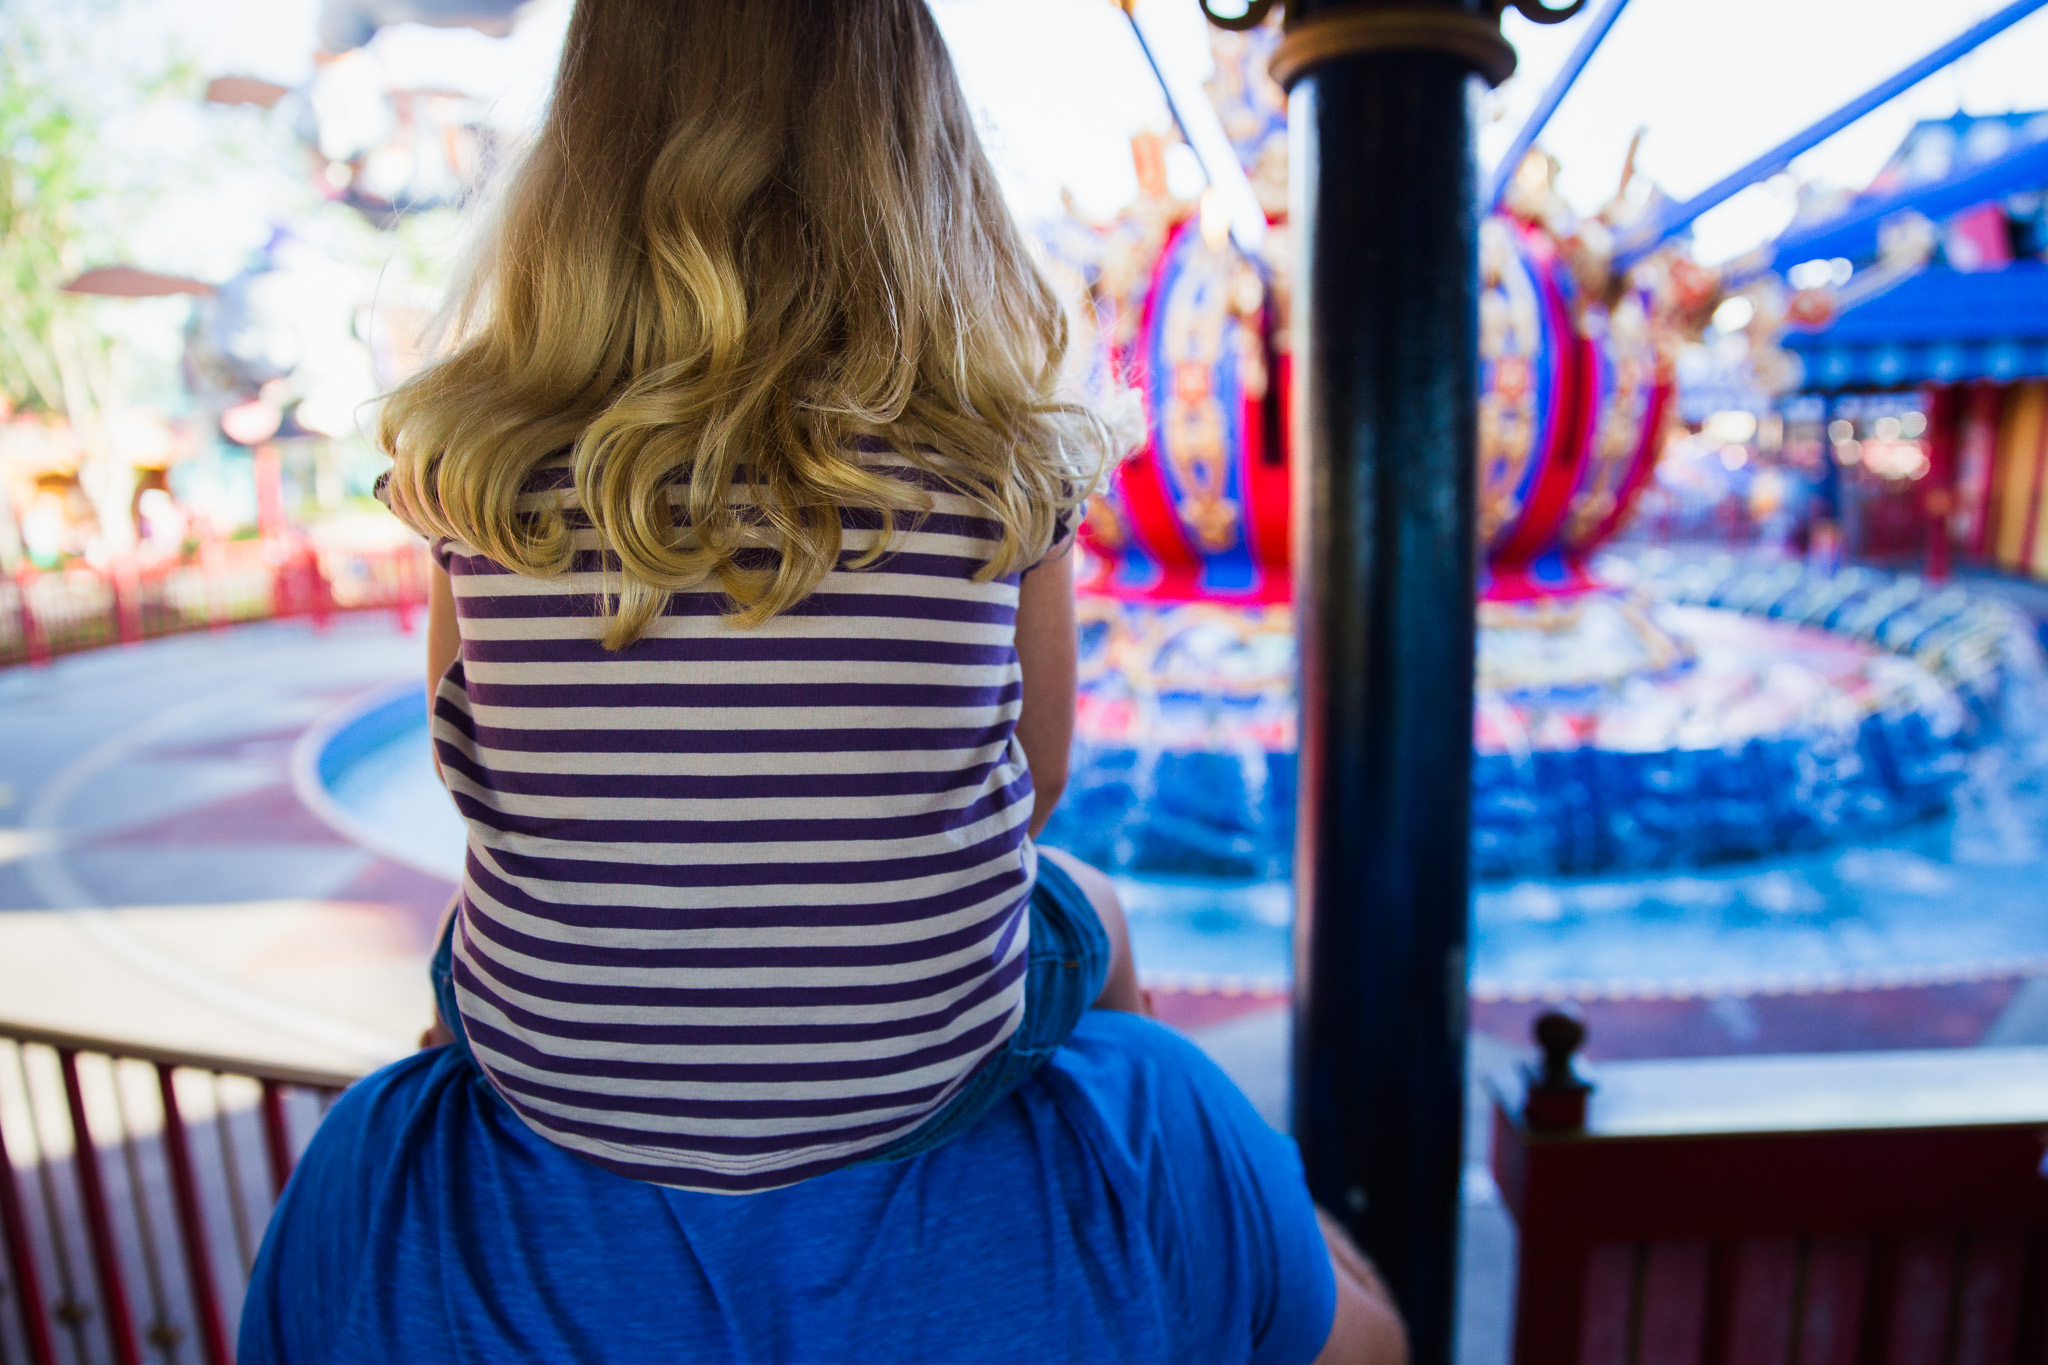 magic kingdom photographer / documentary family photographer / orlando vacation photographer